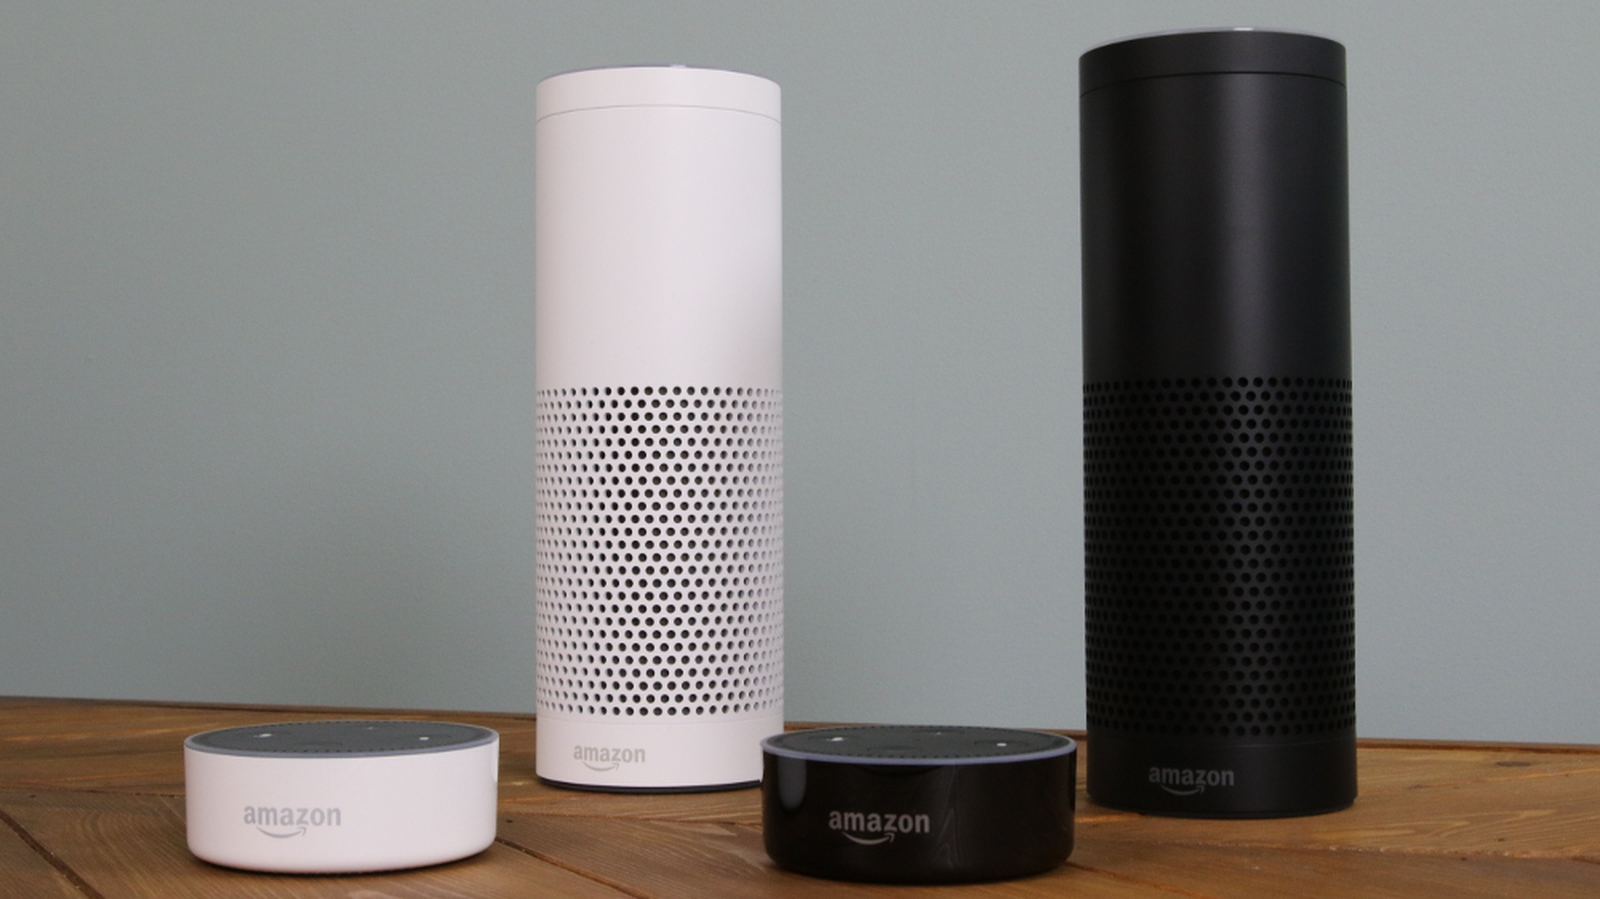 Amazon Echo and Alexa launch in Ireland